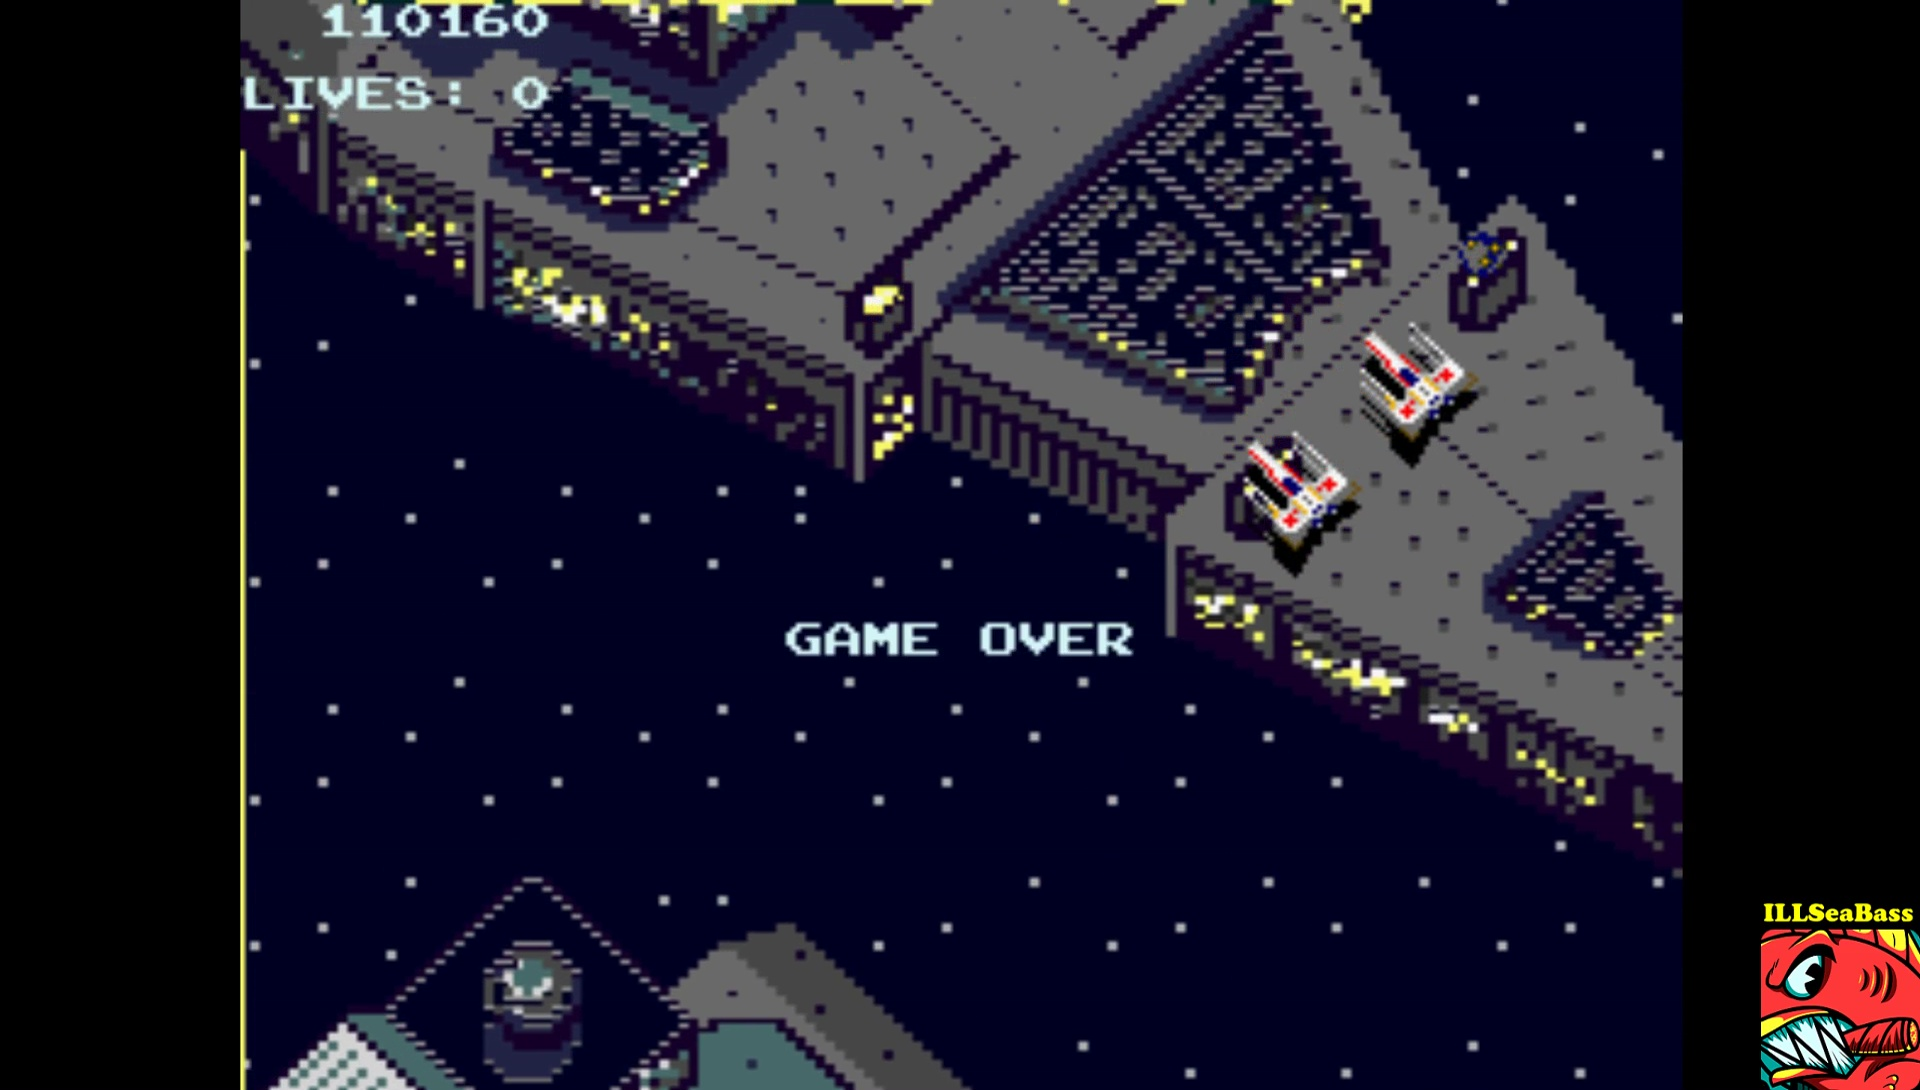 ILLSeaBass: Star Wars: Return of the Jedi (Arcade Emulated / M.A.M.E.) 110,160 points on 2017-03-28 21:22:58